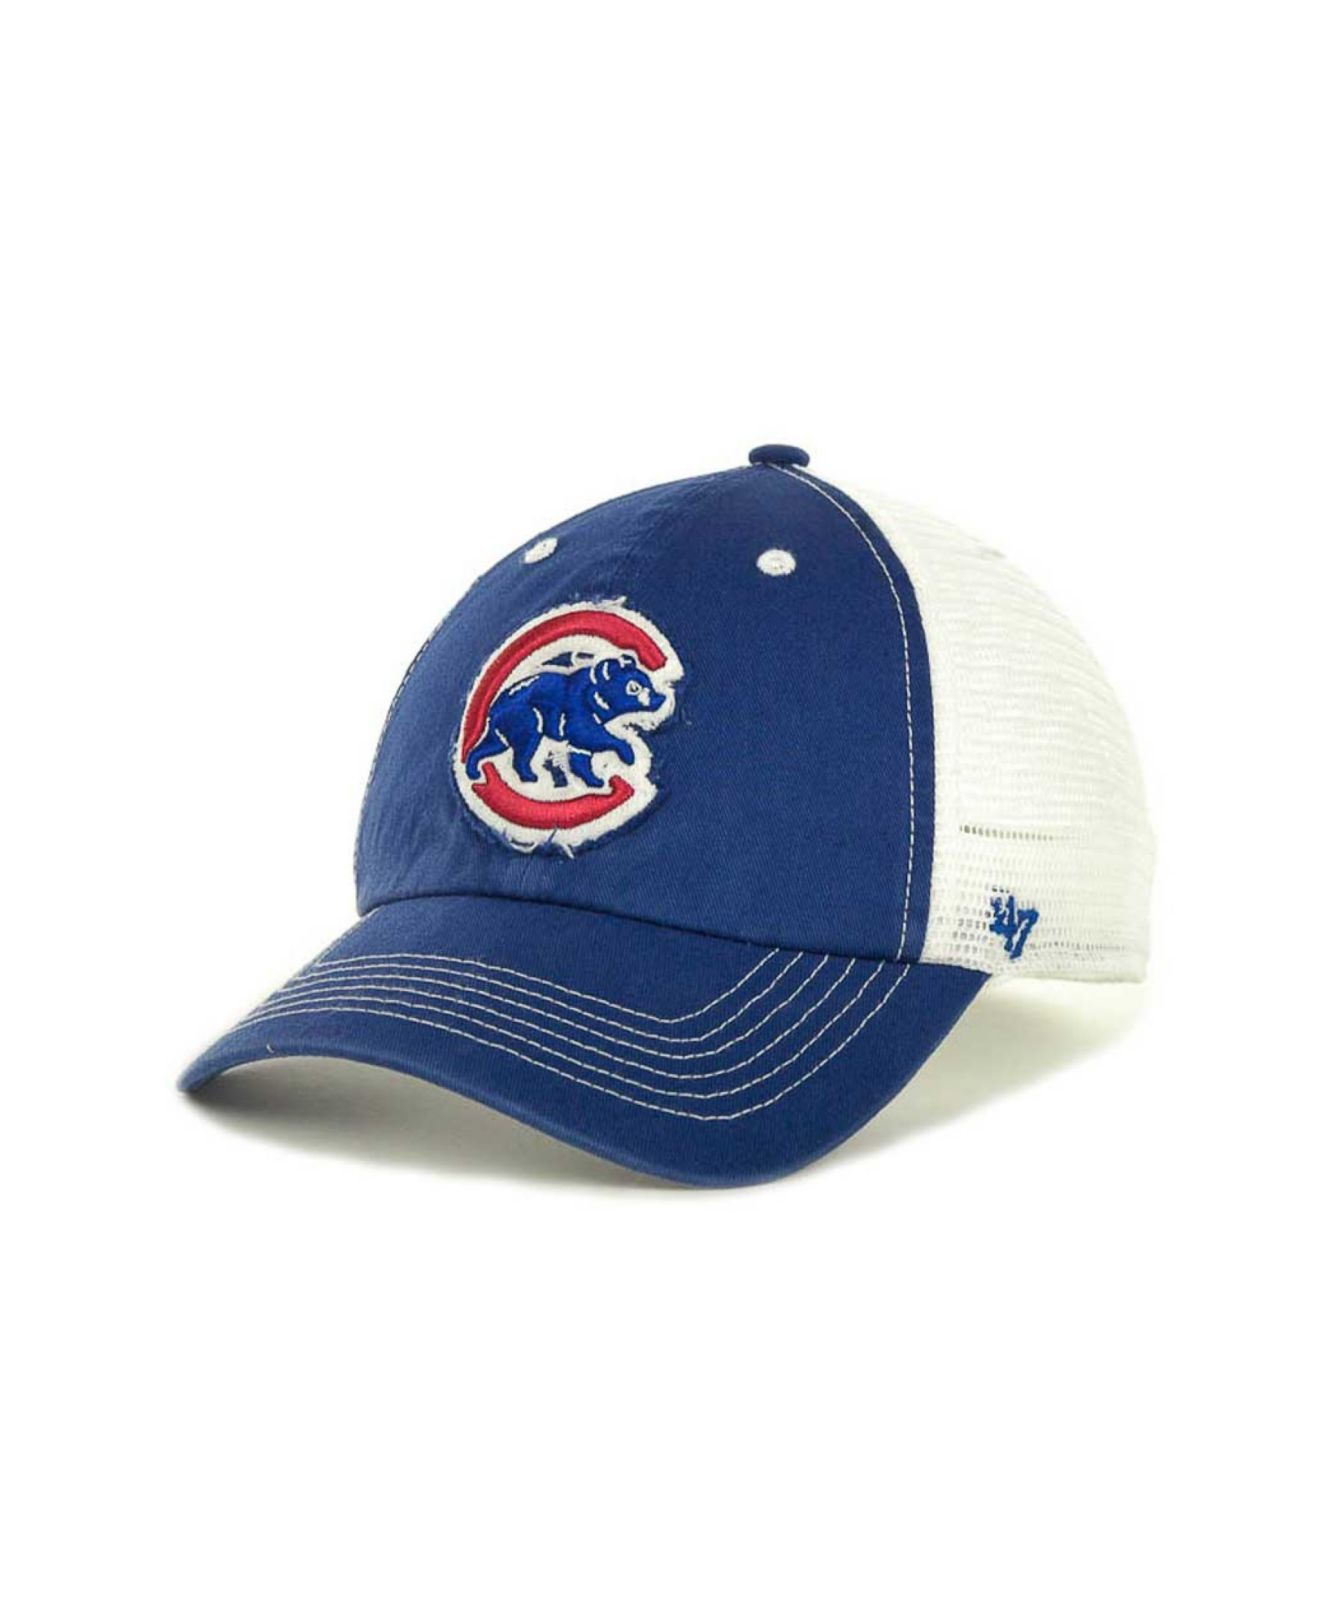 quality design 63ea1 6df88 ... ireland lyst 47 brand chicago cubs blue mountain franchise cap in blue  for men 9552b faf16